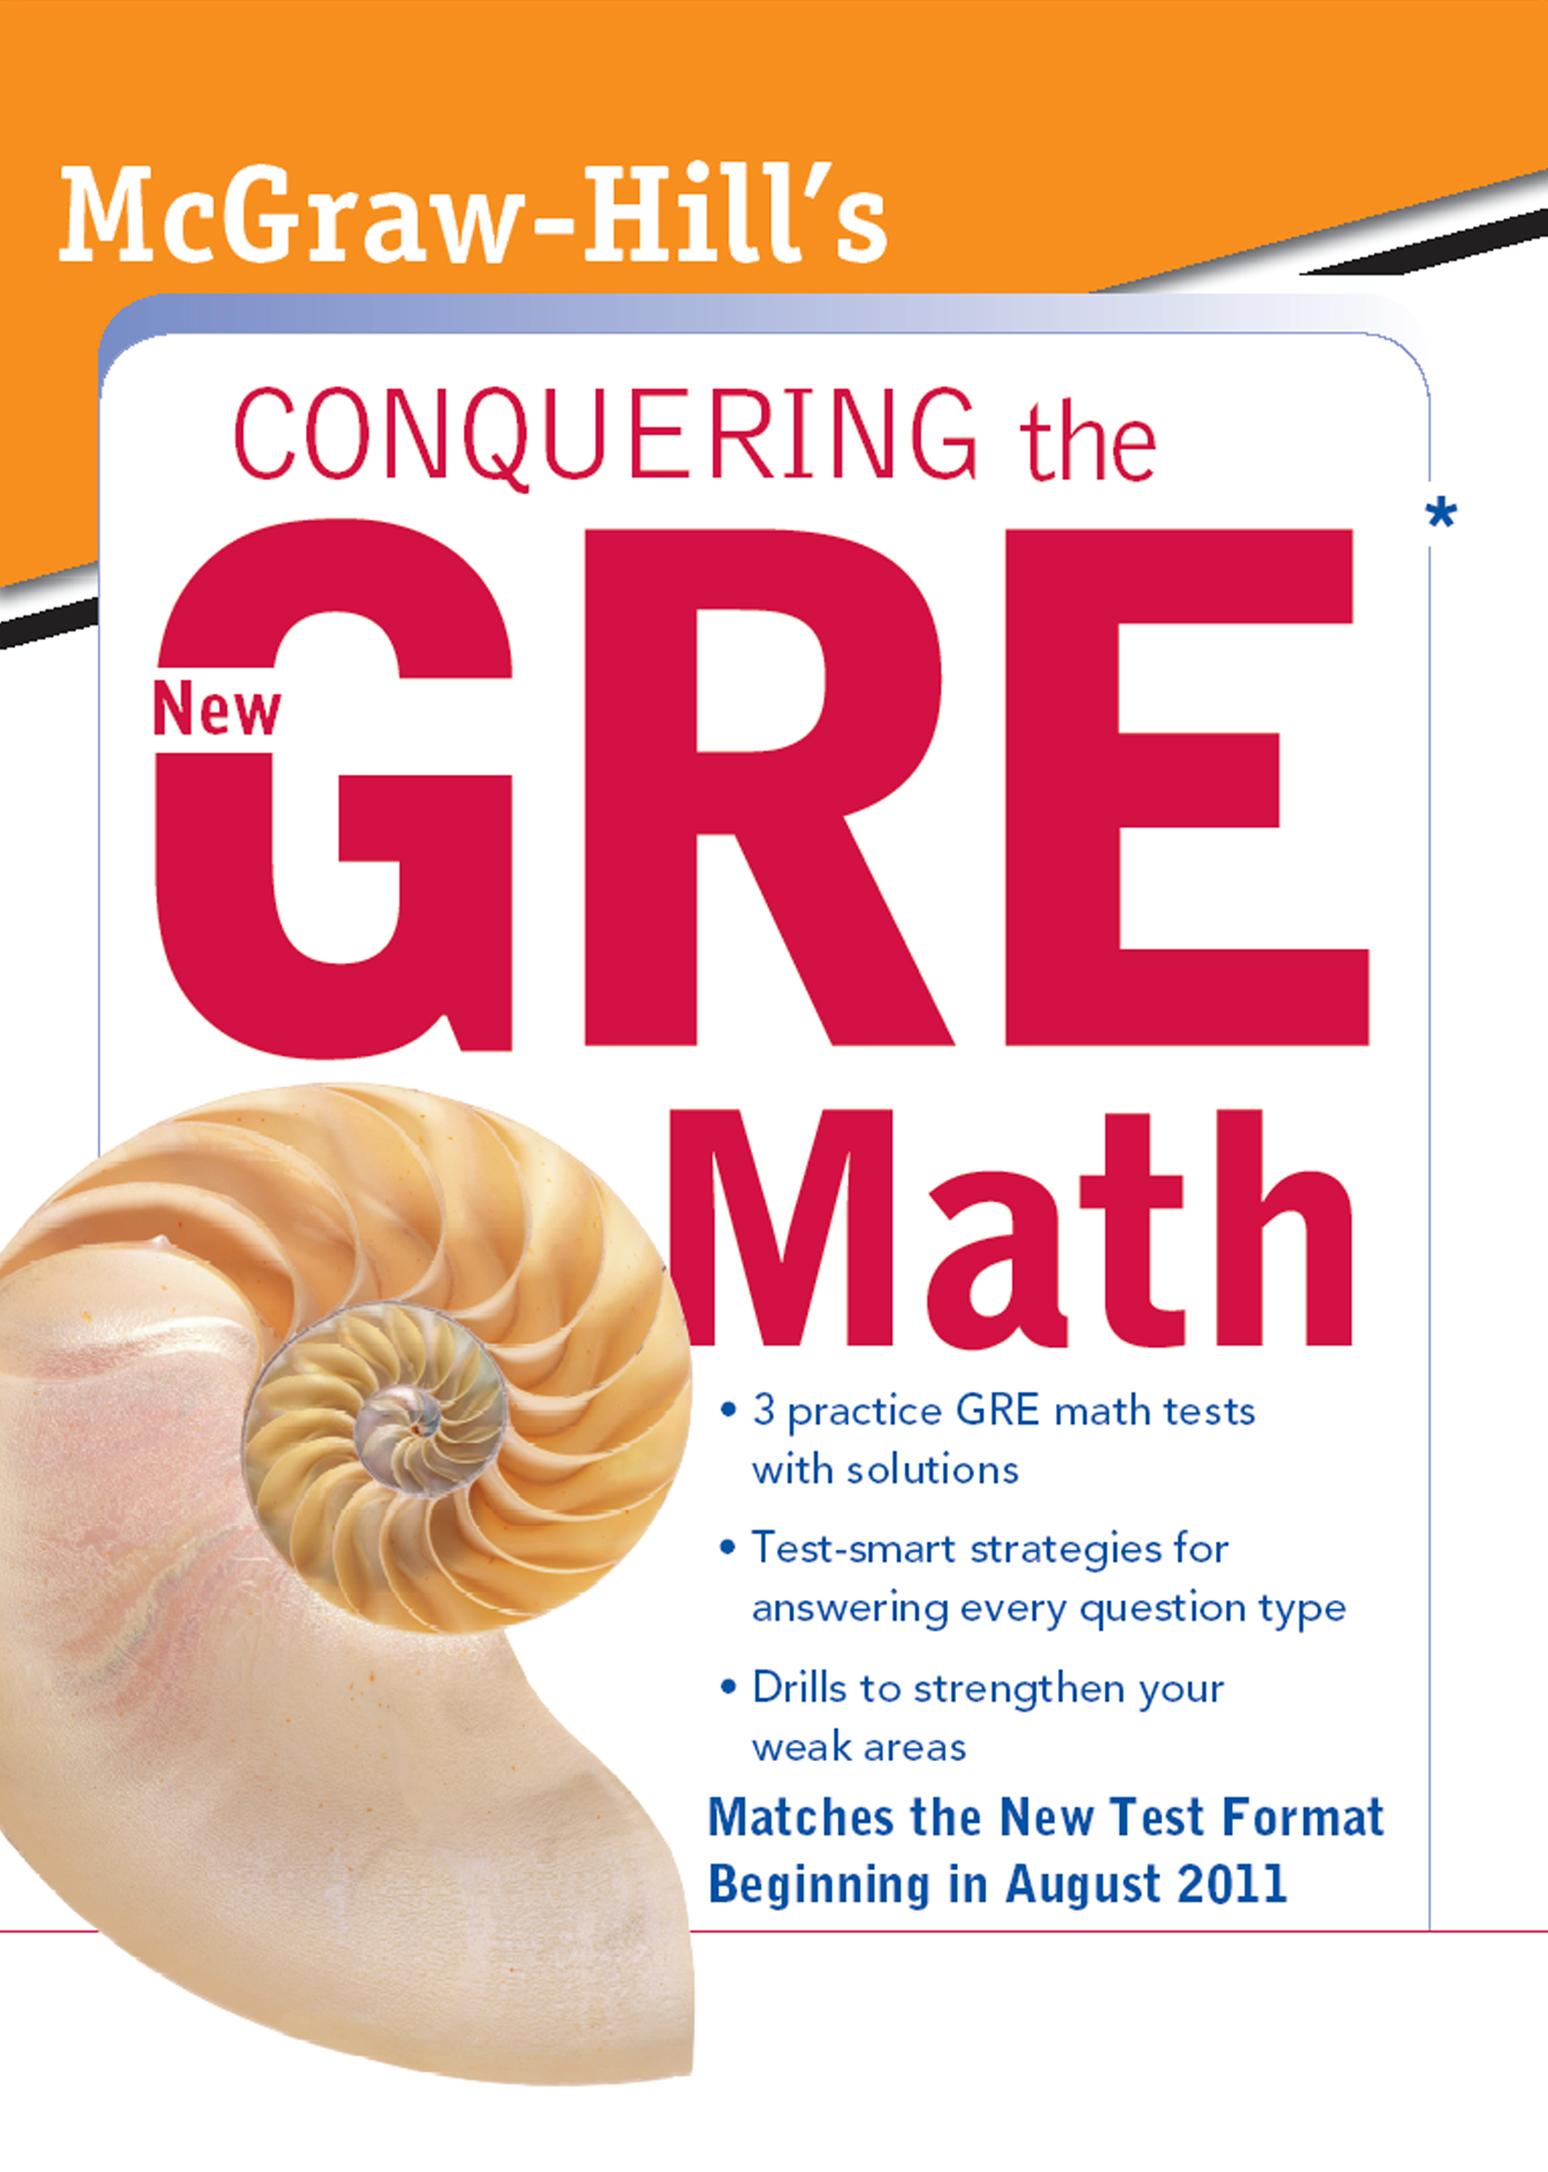 McGraw-Hill's Conquering the New GRE Math : McGraw-Hill's Conquering the New GRE Math: McGraw-Hill's Conquering the New GRE Math